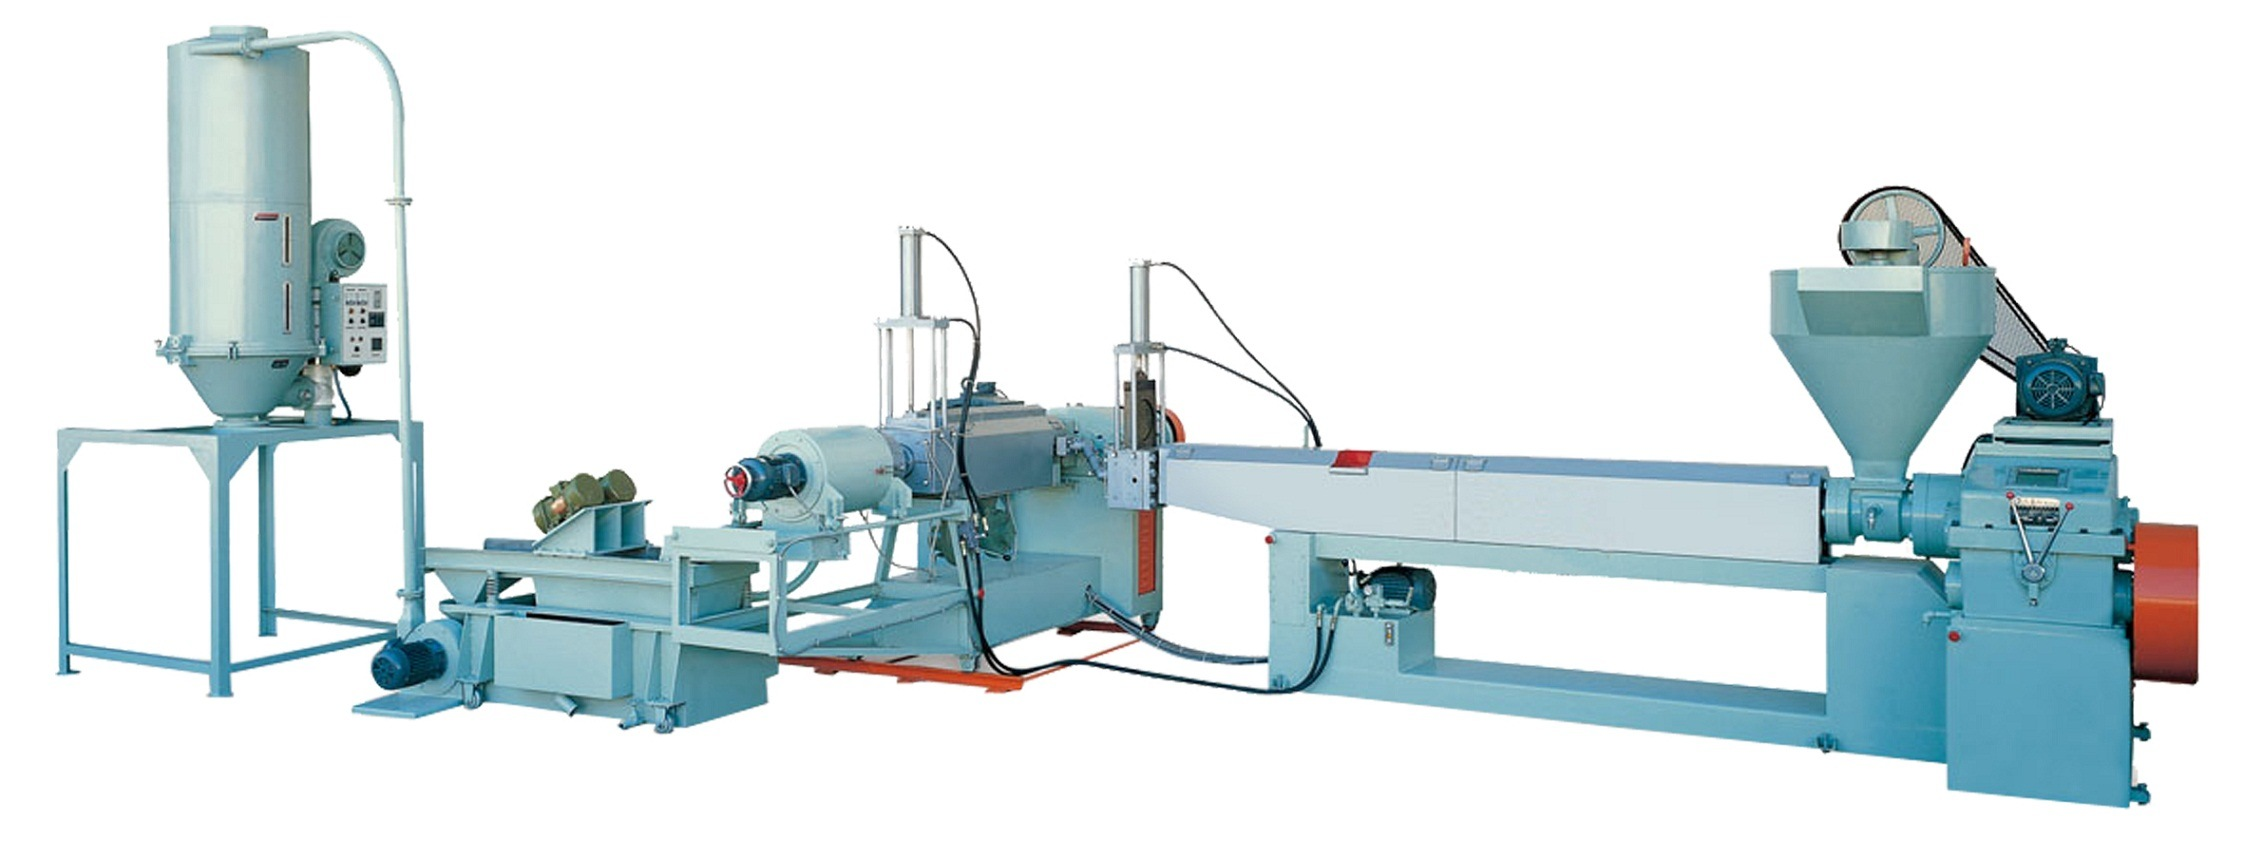 Plastic Waste Recycling Machine (Force-feeding)